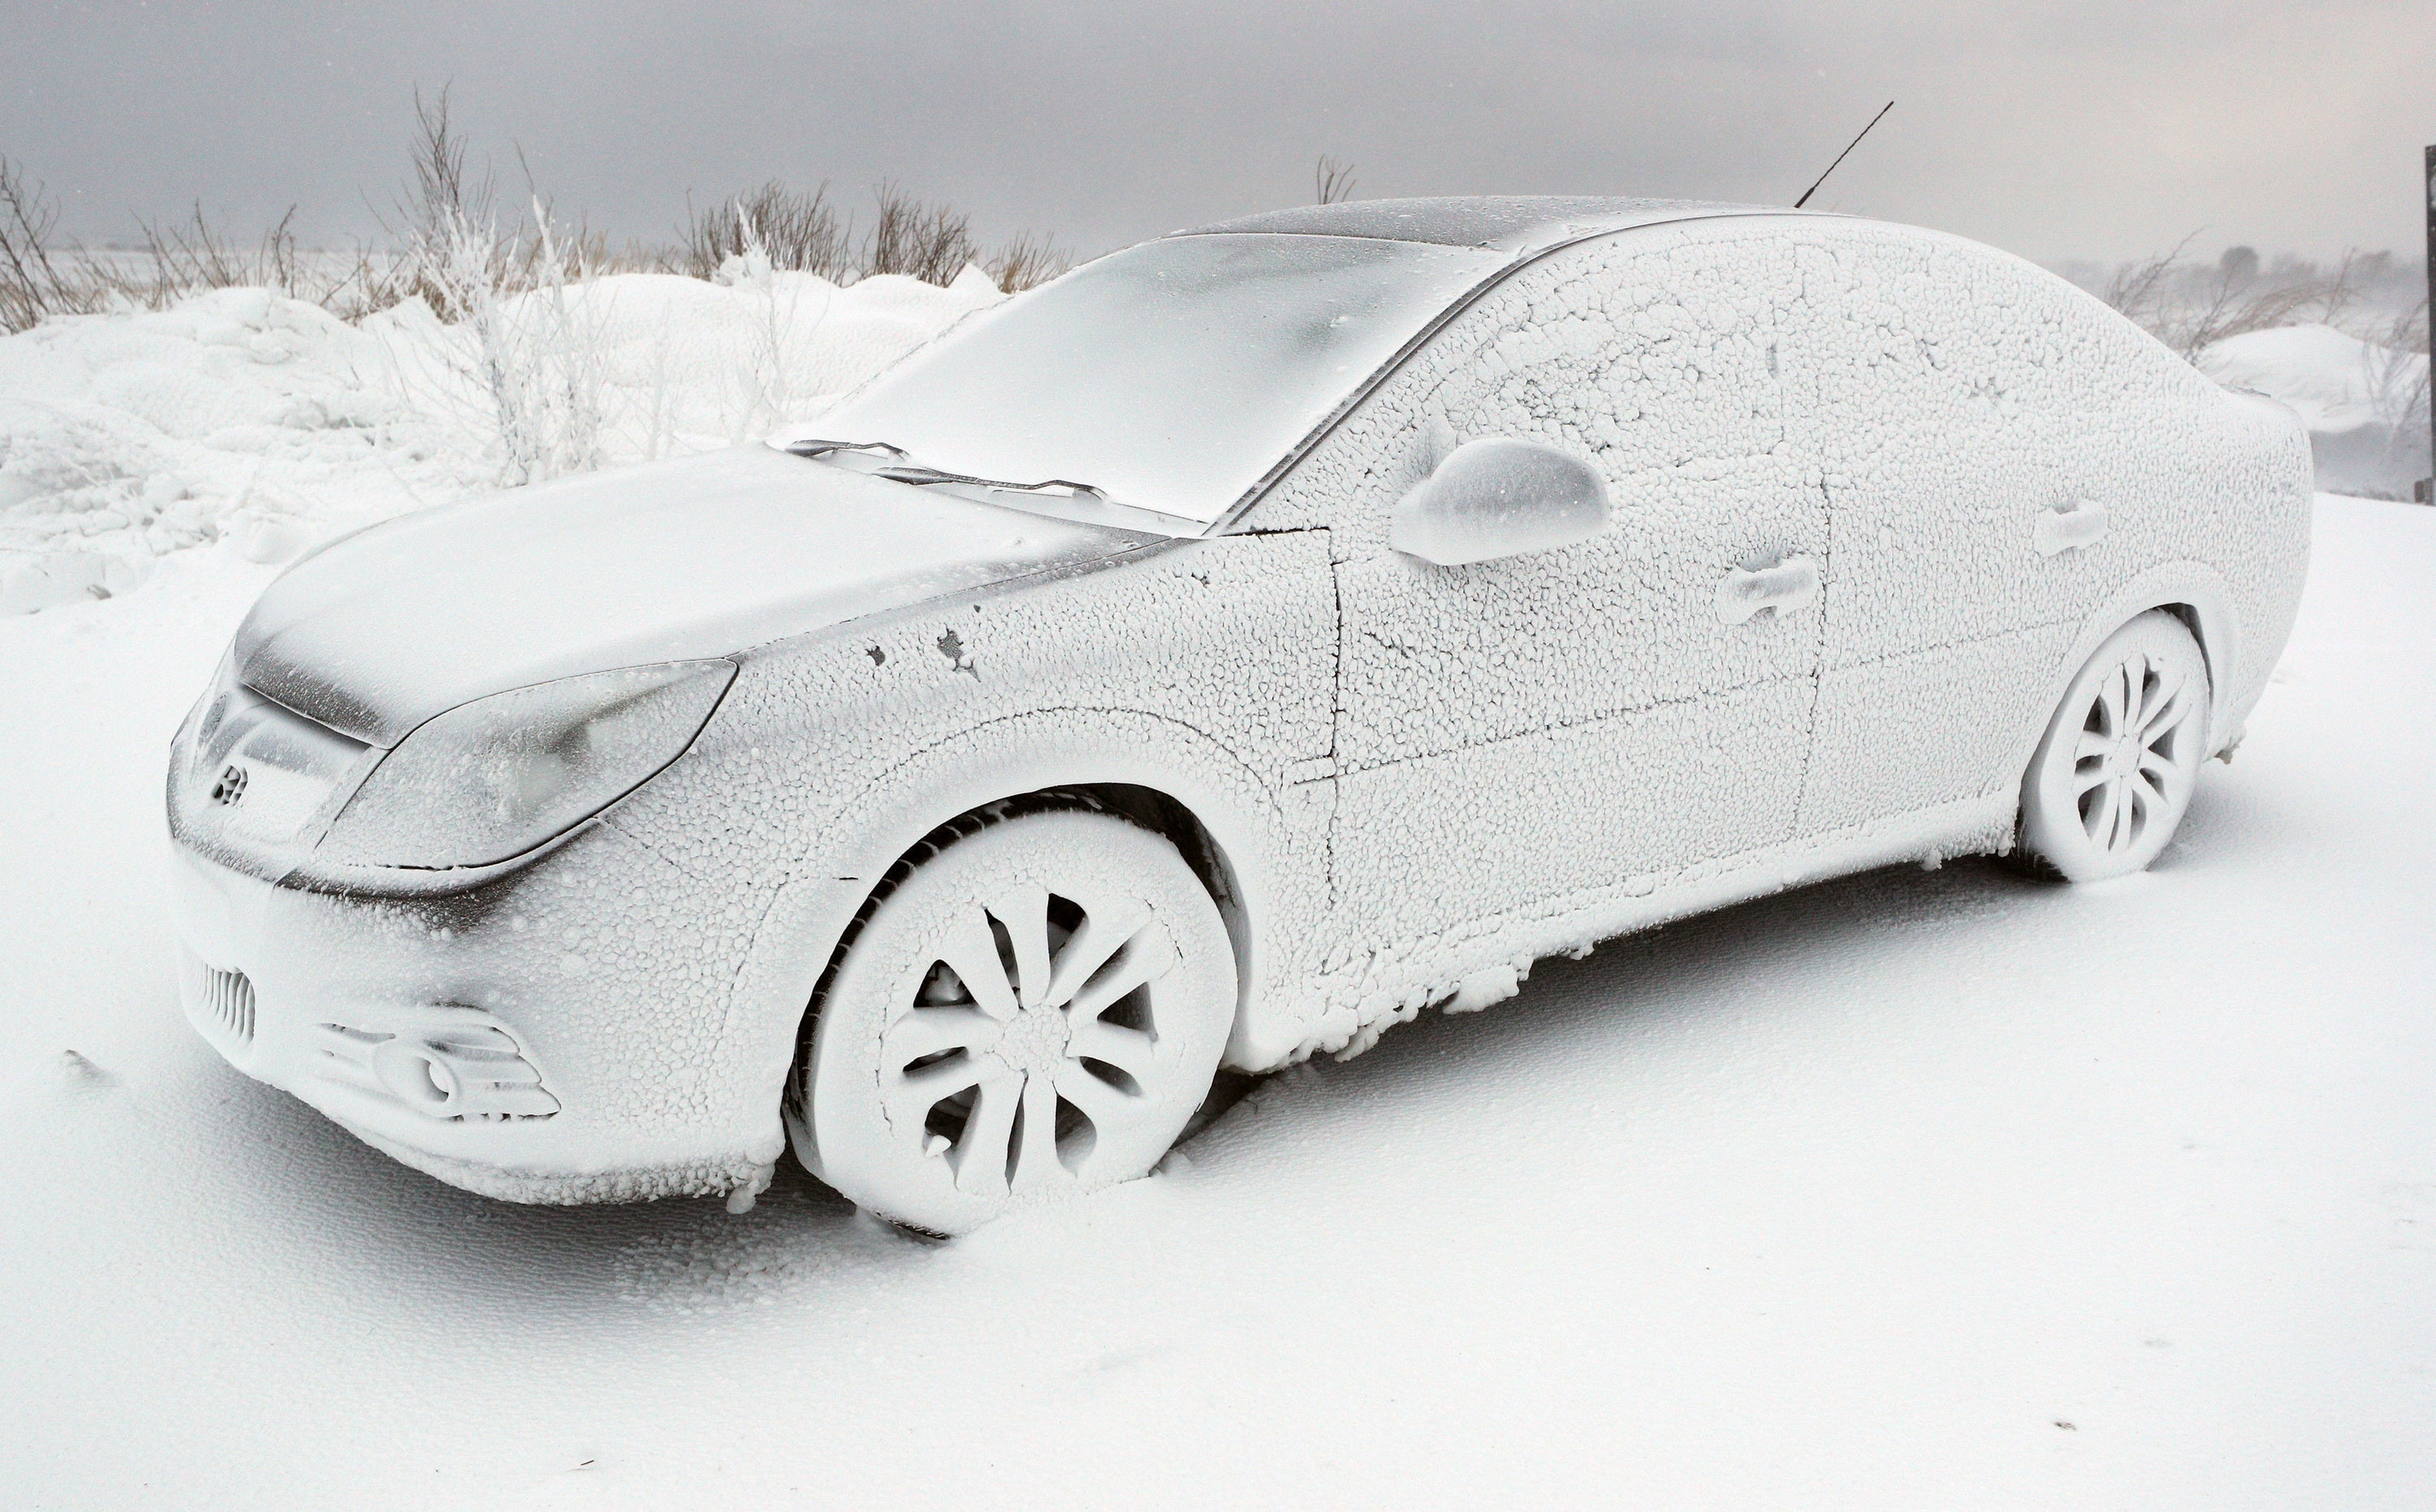 Car parked and absolutely covered in snow